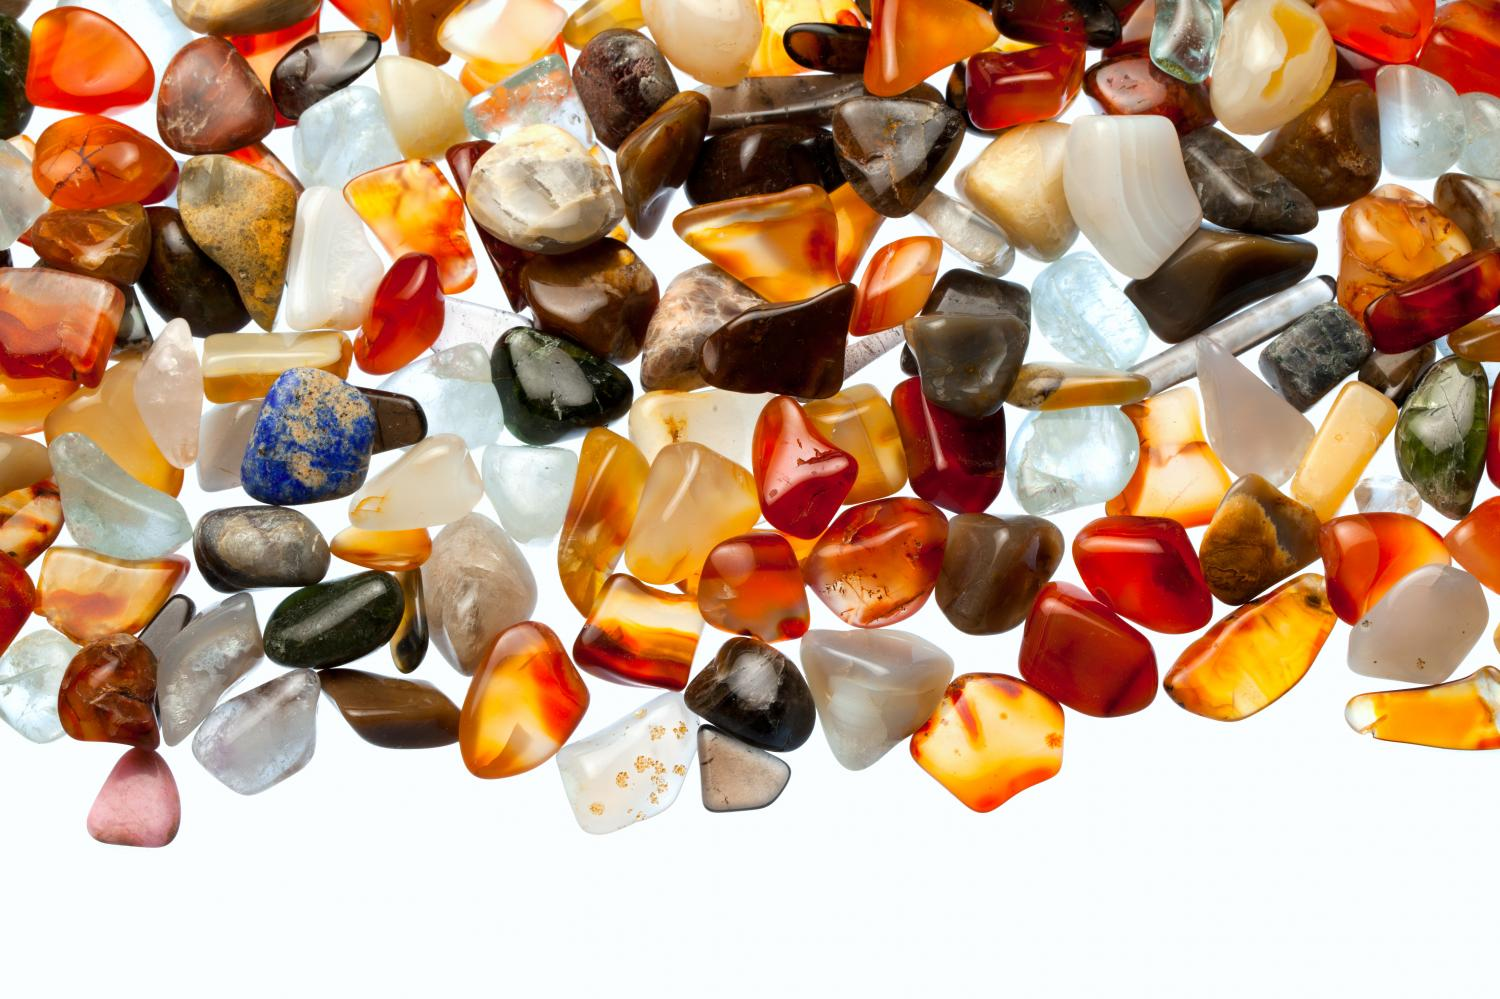 stones, new age supplies, crystals, metaphysical supplies